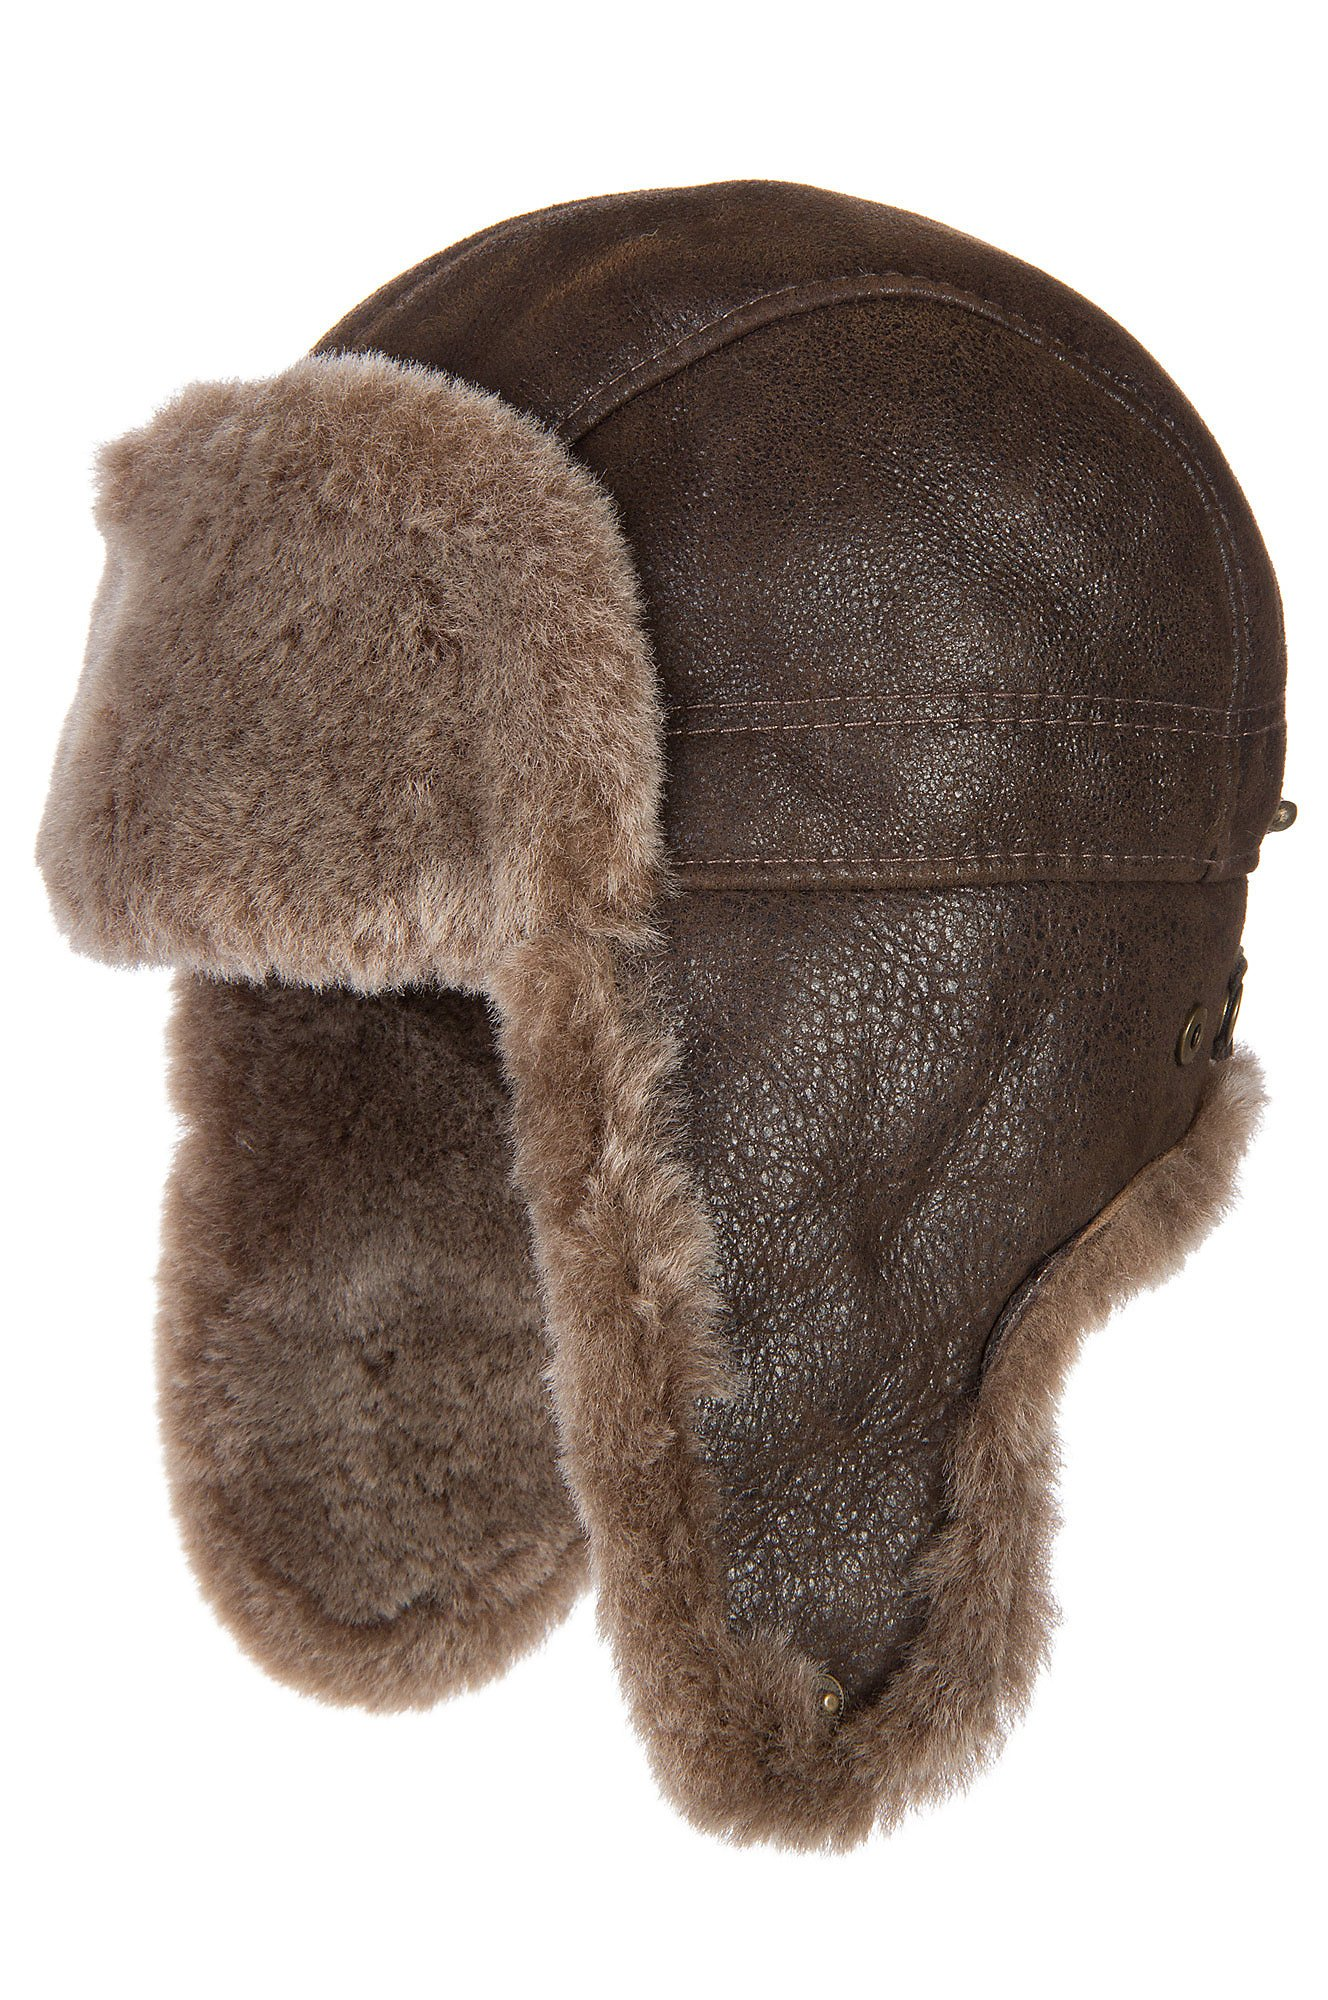 Shearling Sheepskin Trapper Hat by Overland Sheepskin Co